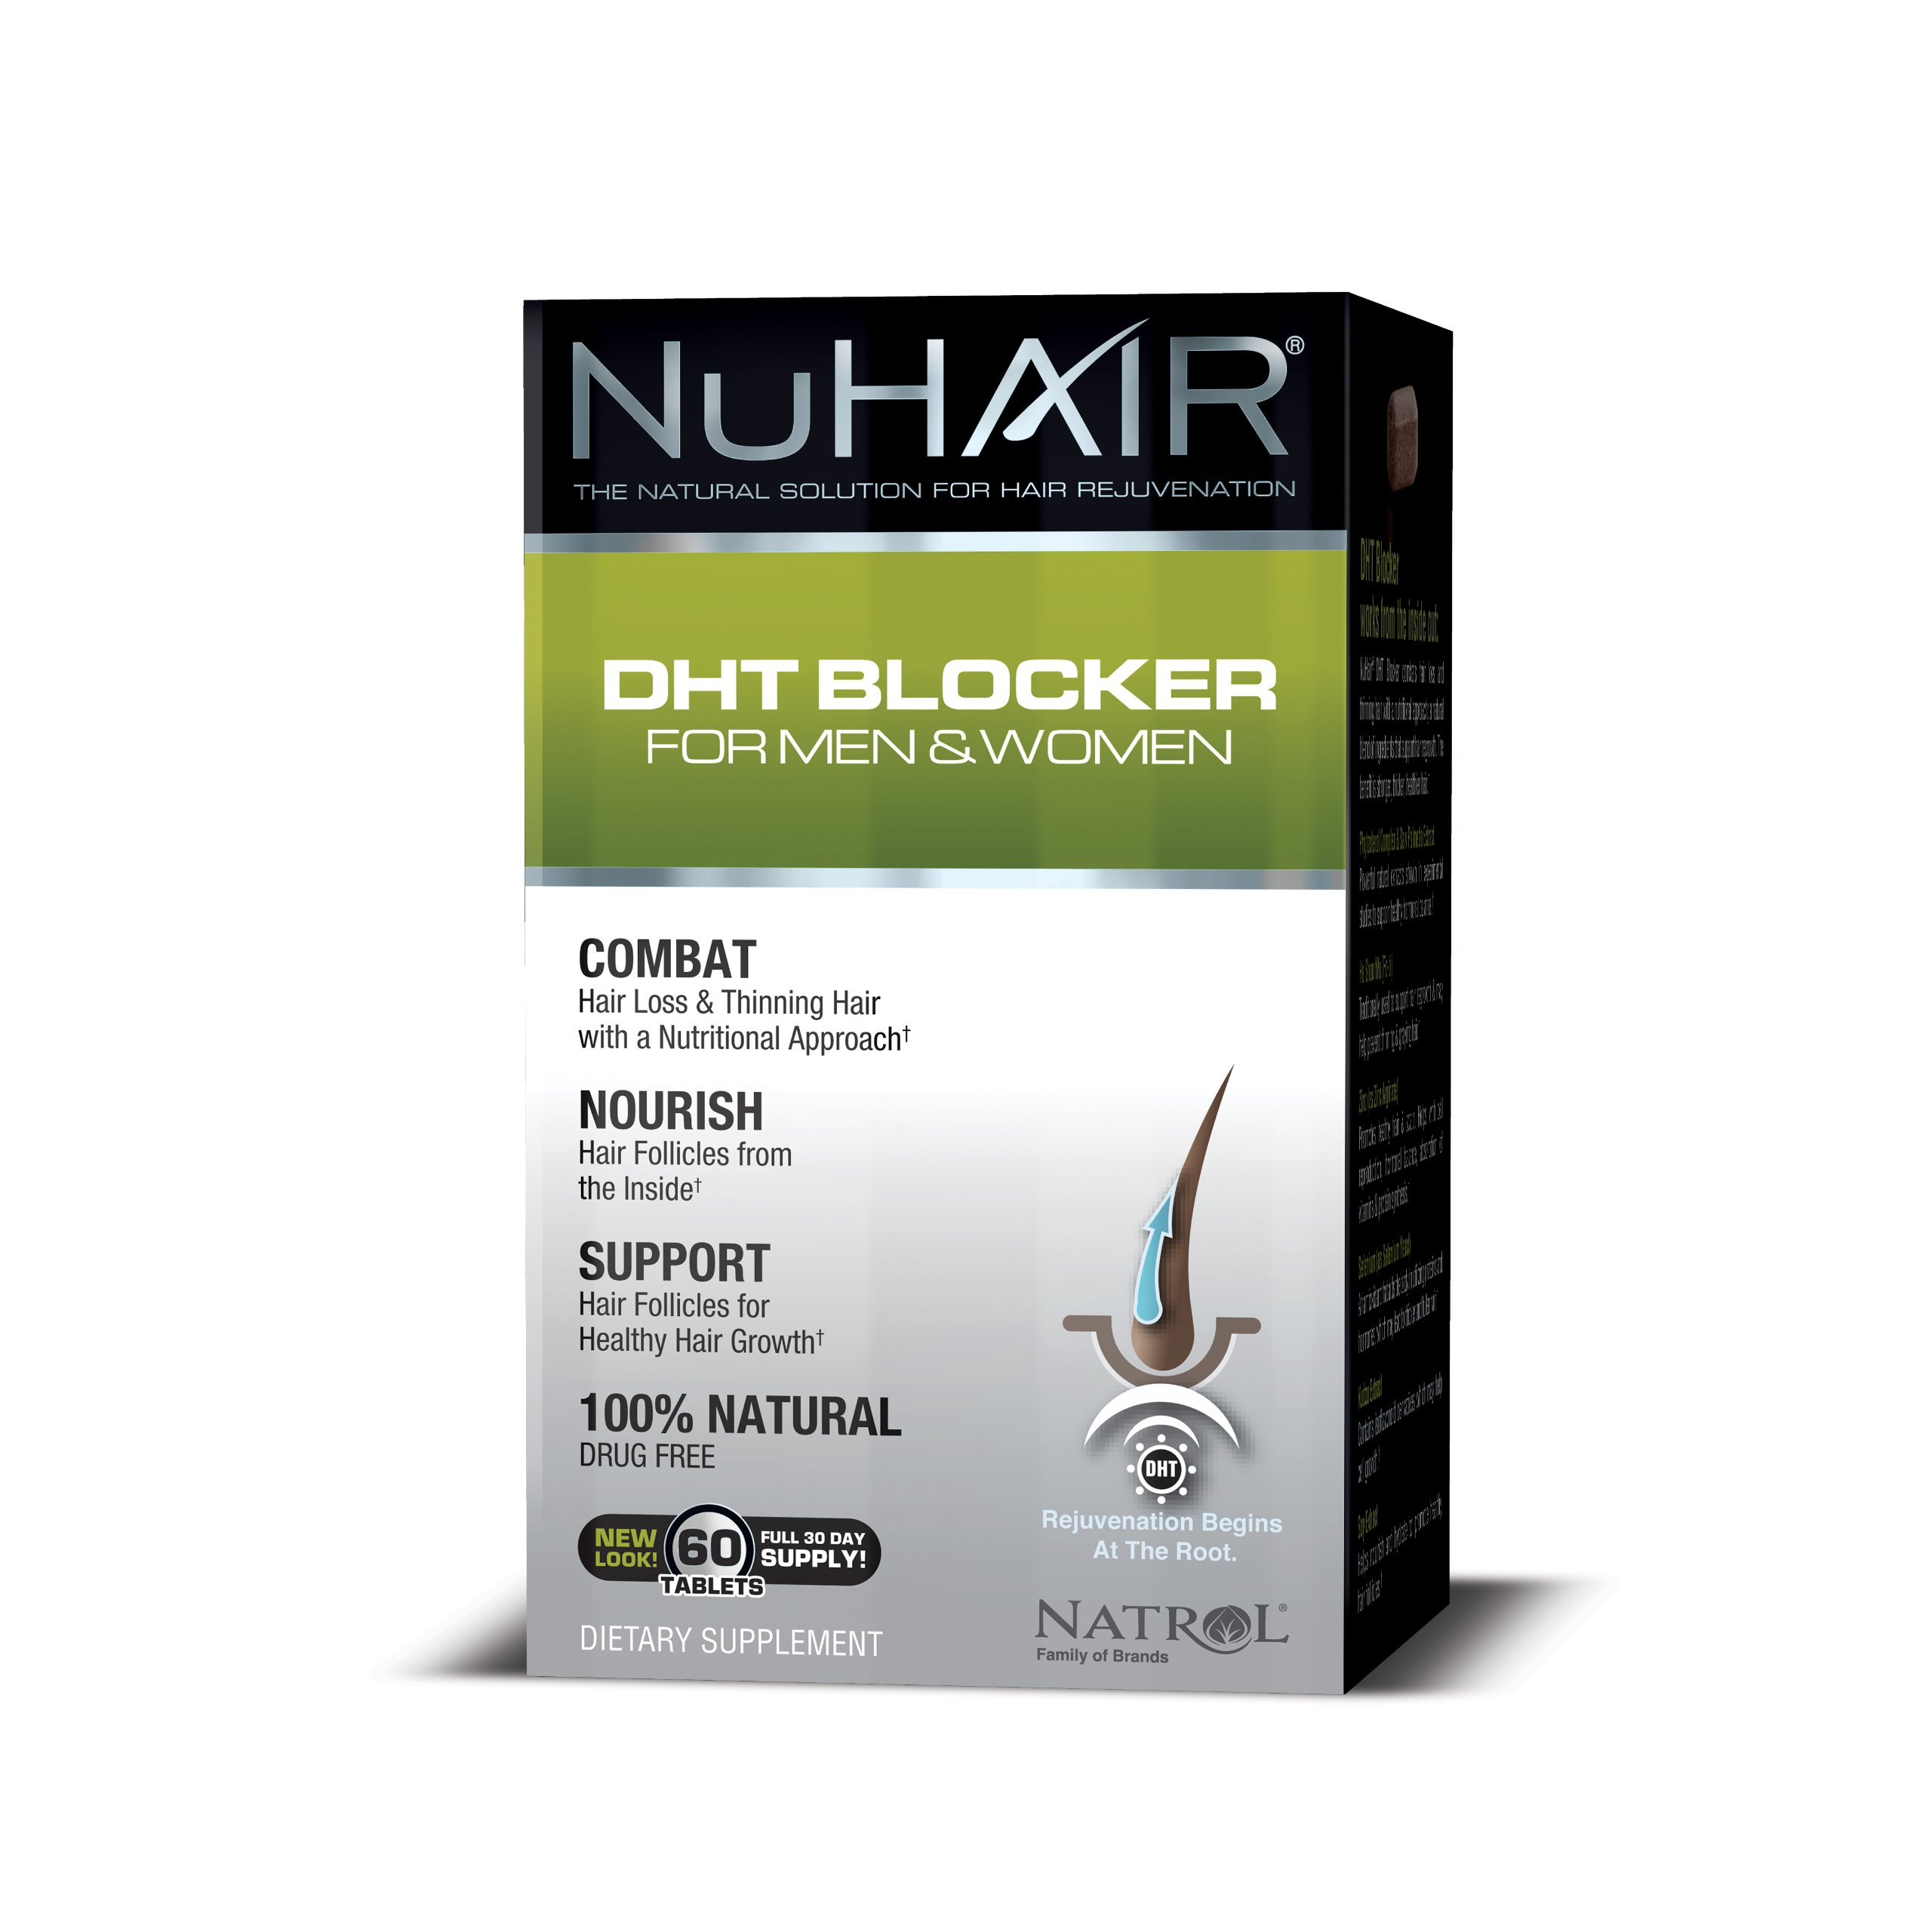 Nu Hair DHT Blocker for Men and Women, Tablets, 60 Count by Nu-Hair